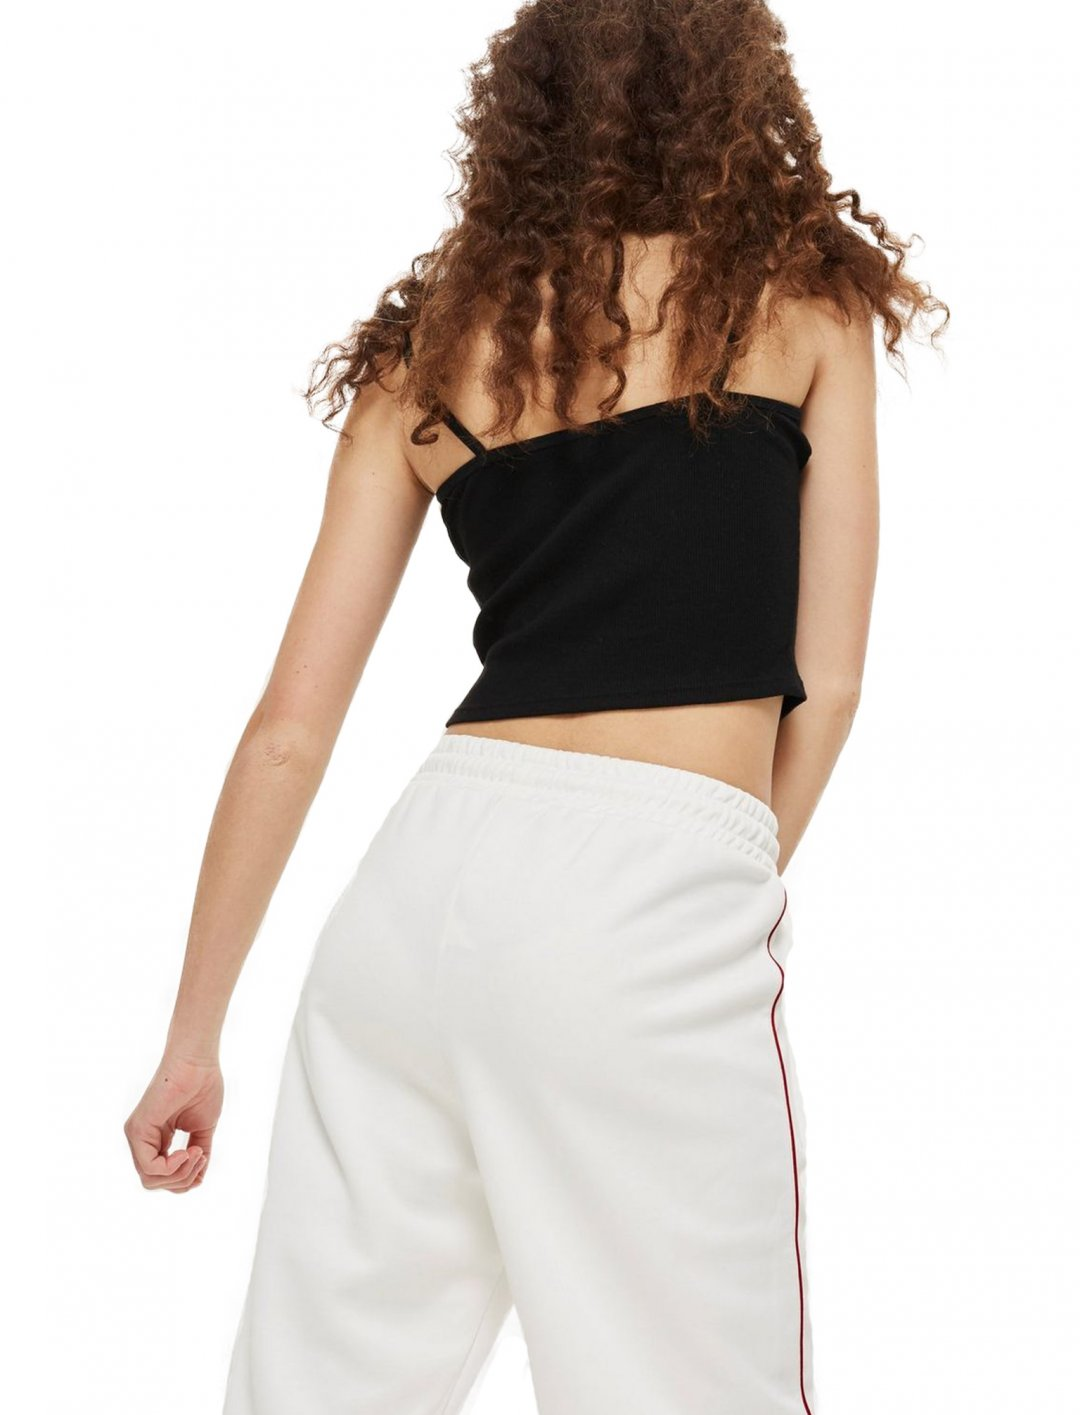 """Topshop Popper Camisole Top {""""id"""":5,""""product_section_id"""":1,""""name"""":""""Clothing"""",""""order"""":5} Topshop"""